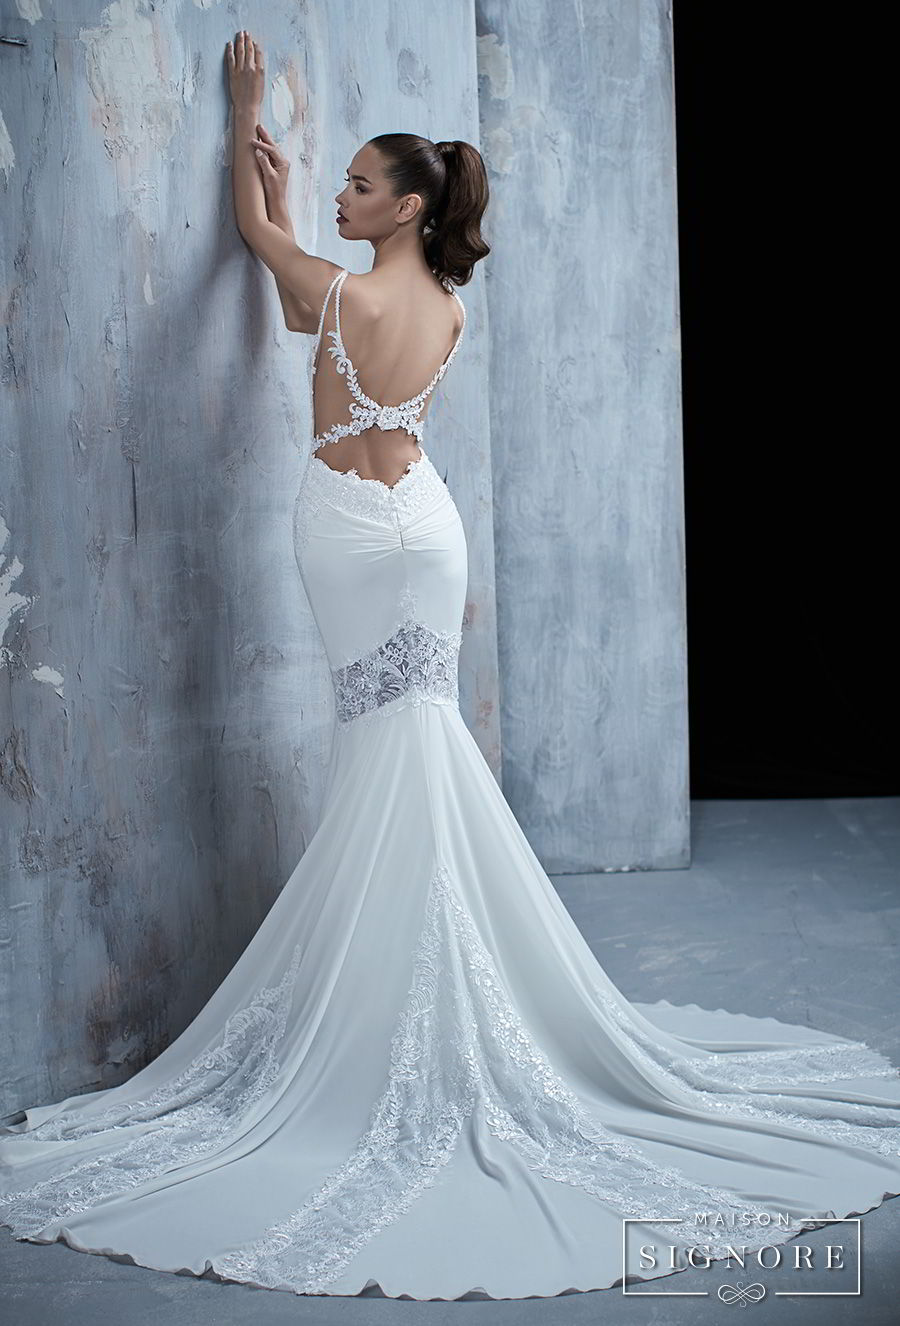 maison signore 2018 bridal sleeveless mermaid wedding dress open back chapel train (thalia) bv mv